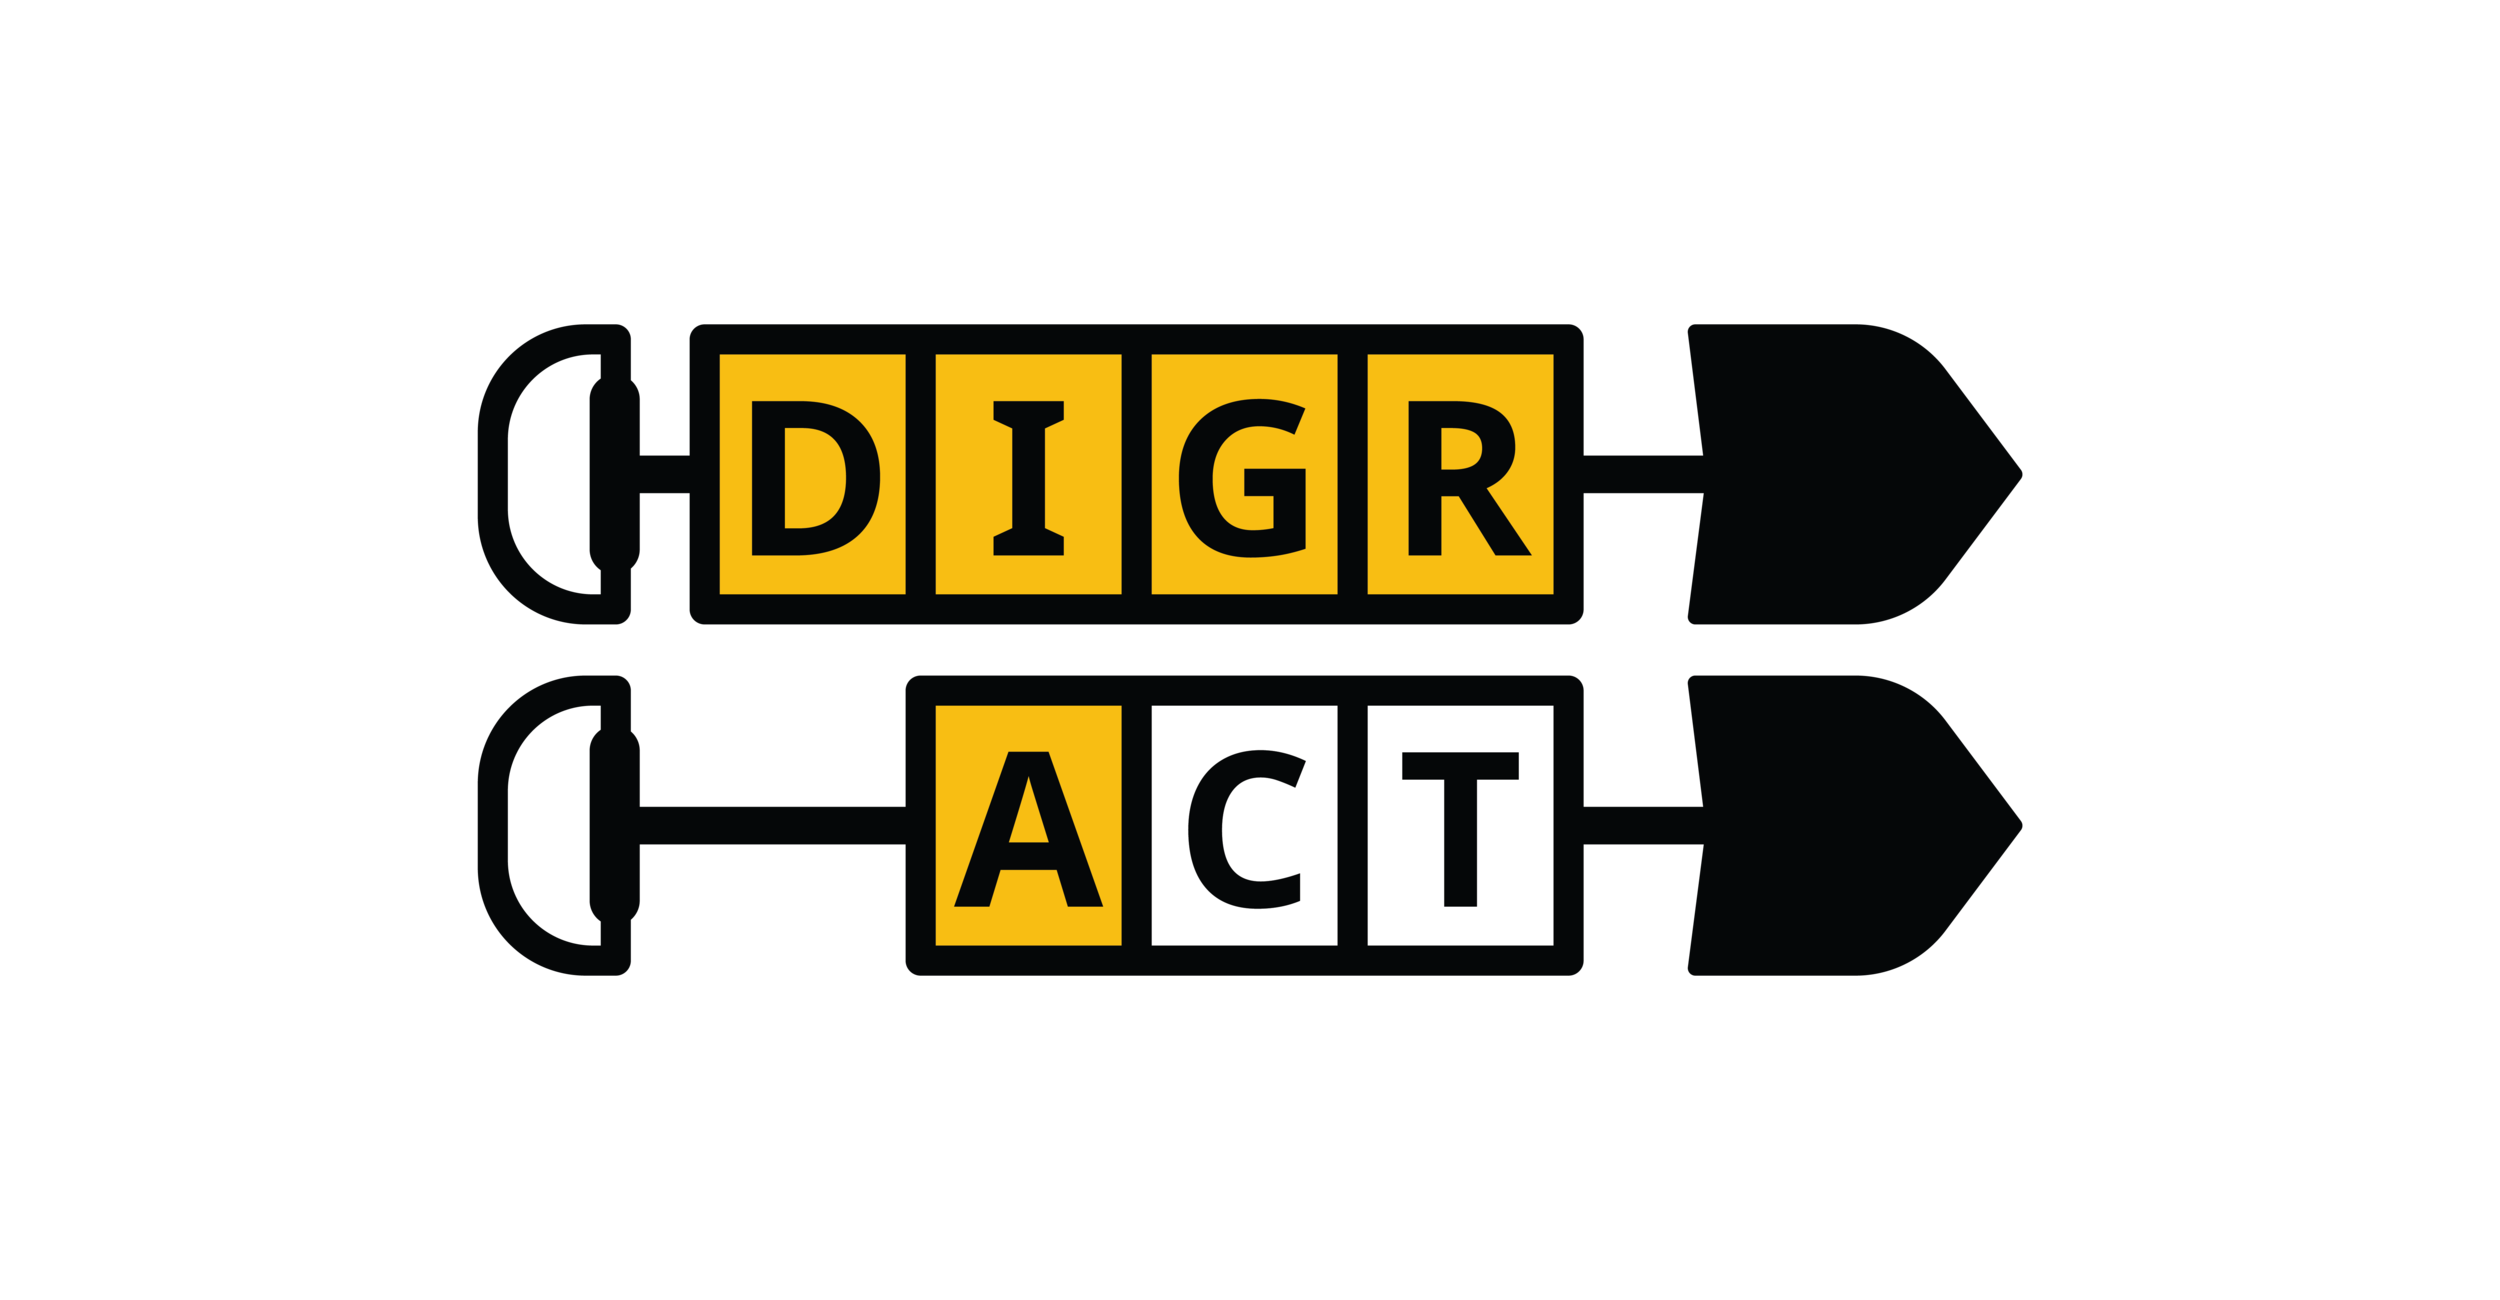 [P] DIGR-ACT_Stacked Logo - DIGR-A.png